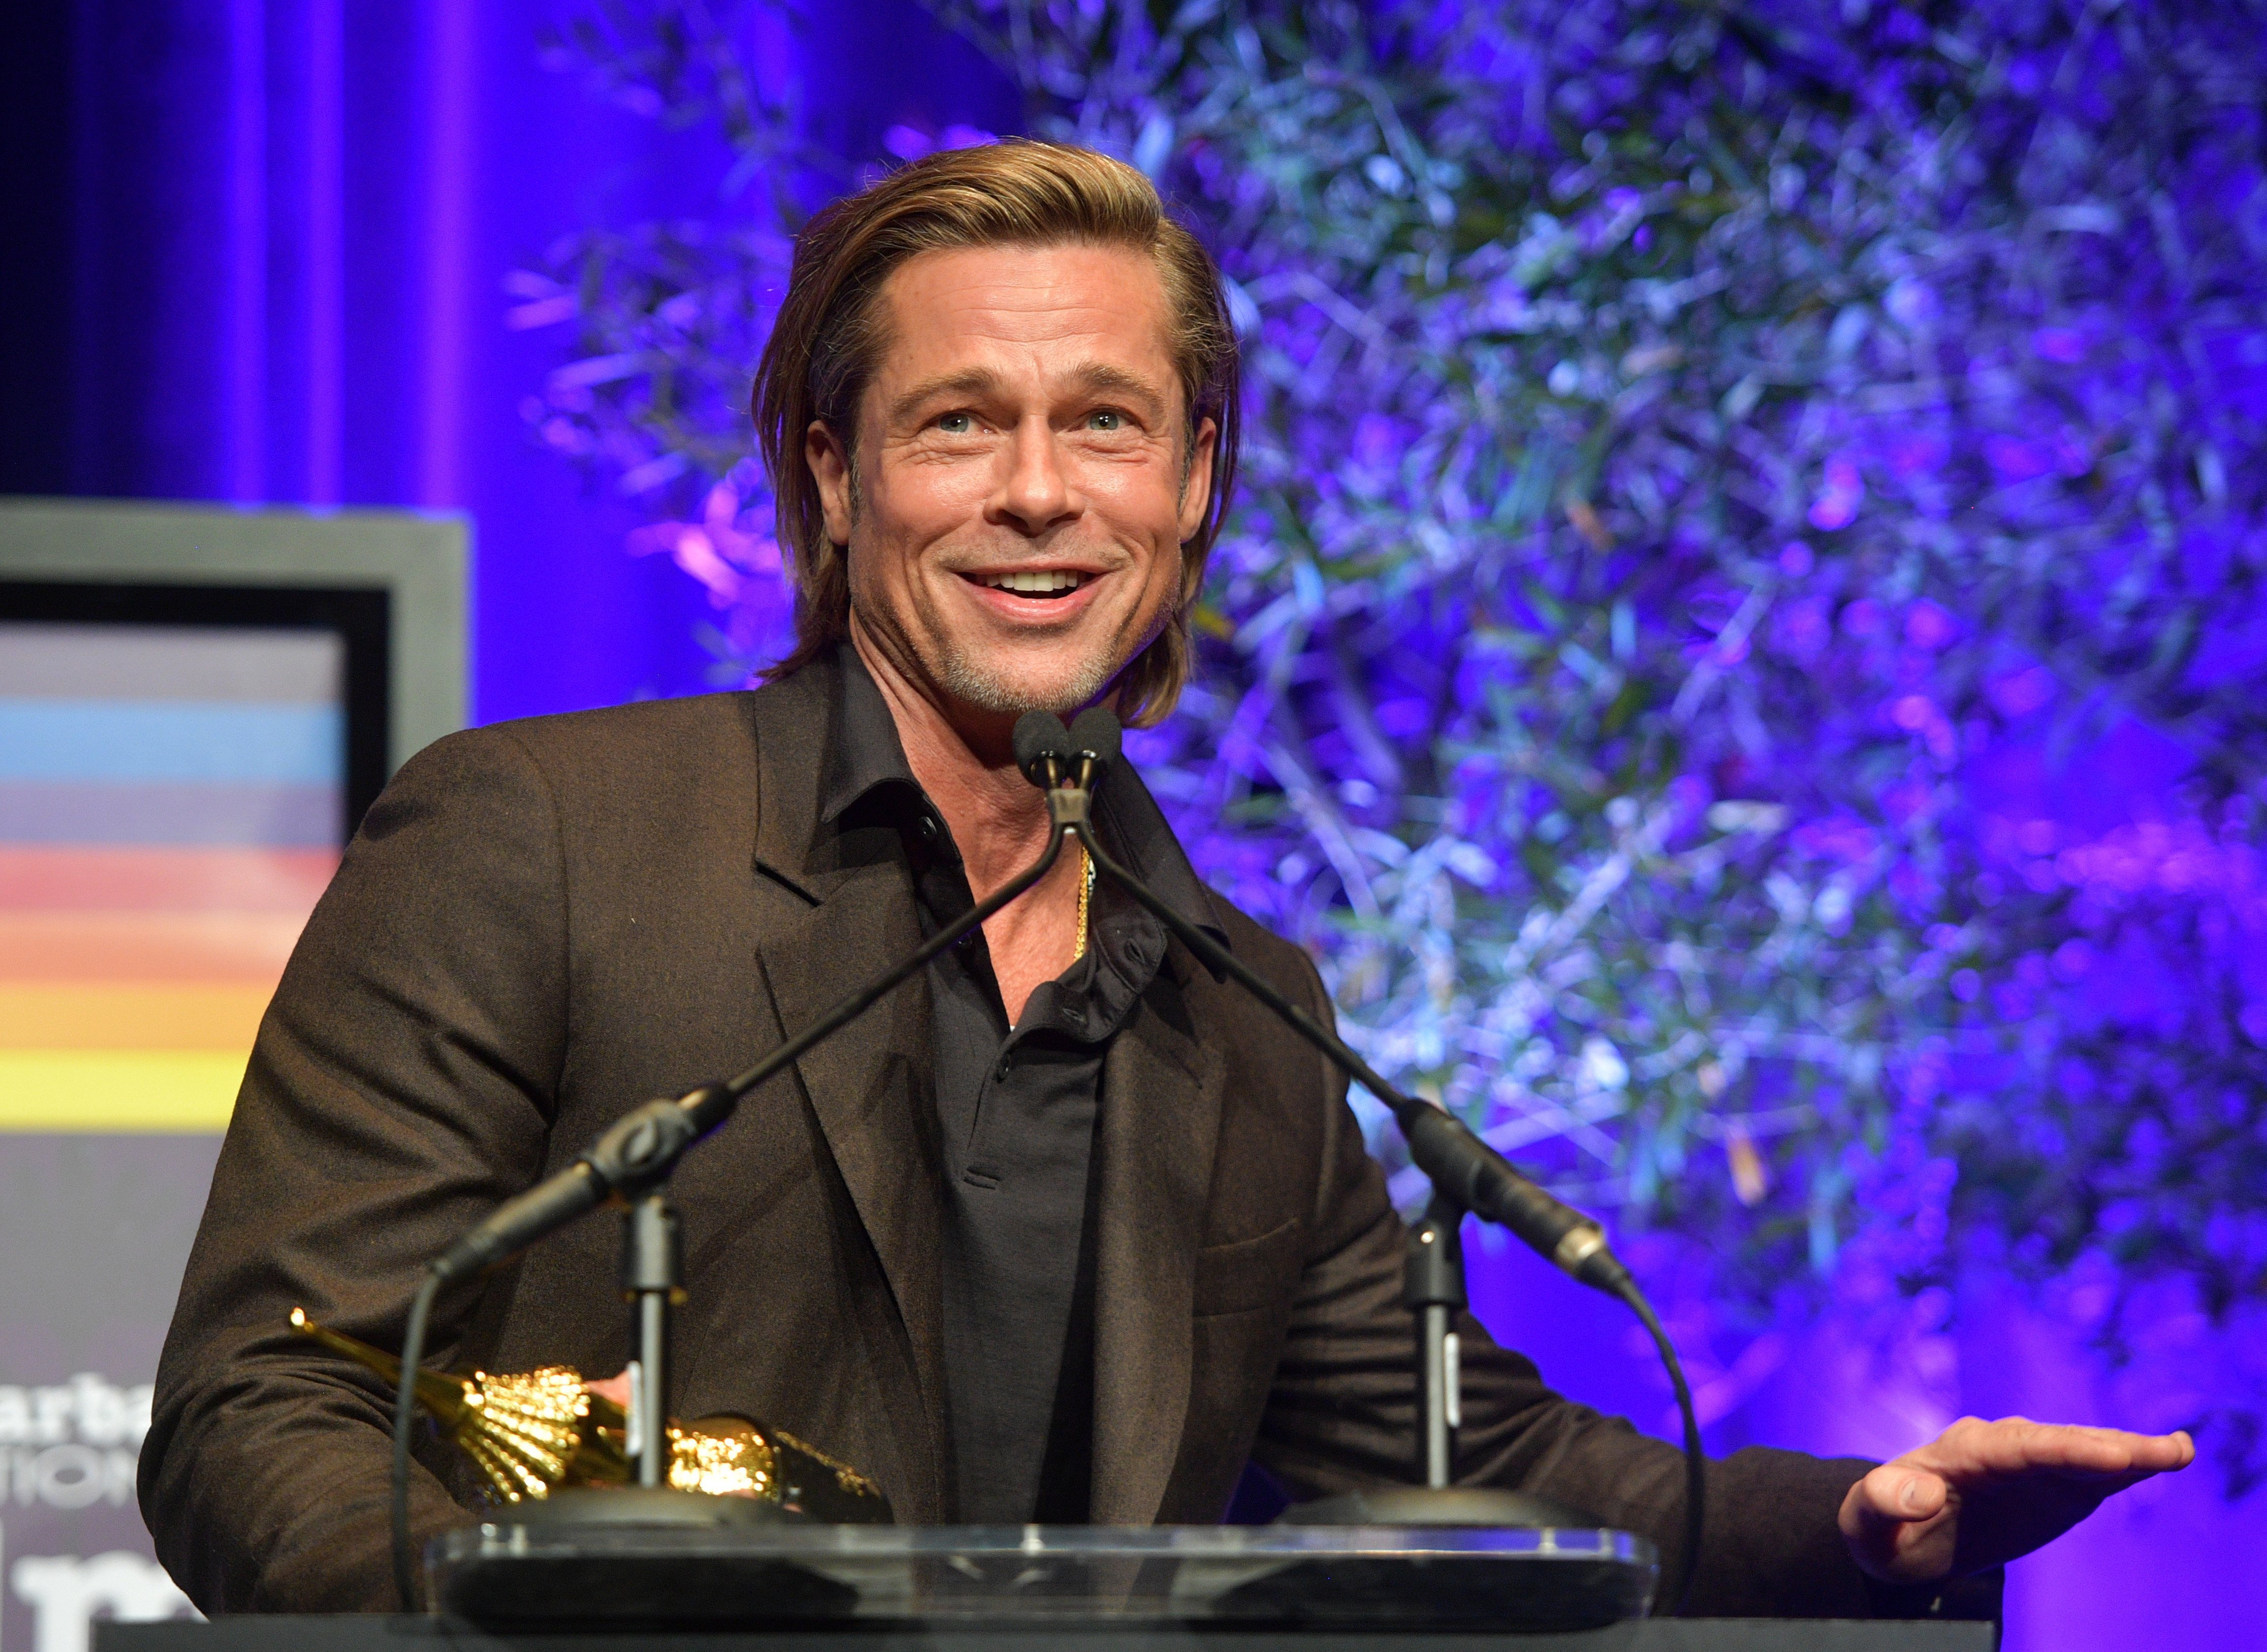 Brad Pitt speaks onstage at the Maltin Modern Master Award Honoring Brad Pitt during the 35th Santa Barbara International Film Festival at the Arlington Theatre on January 22, 2020 | Photo: GettyImages